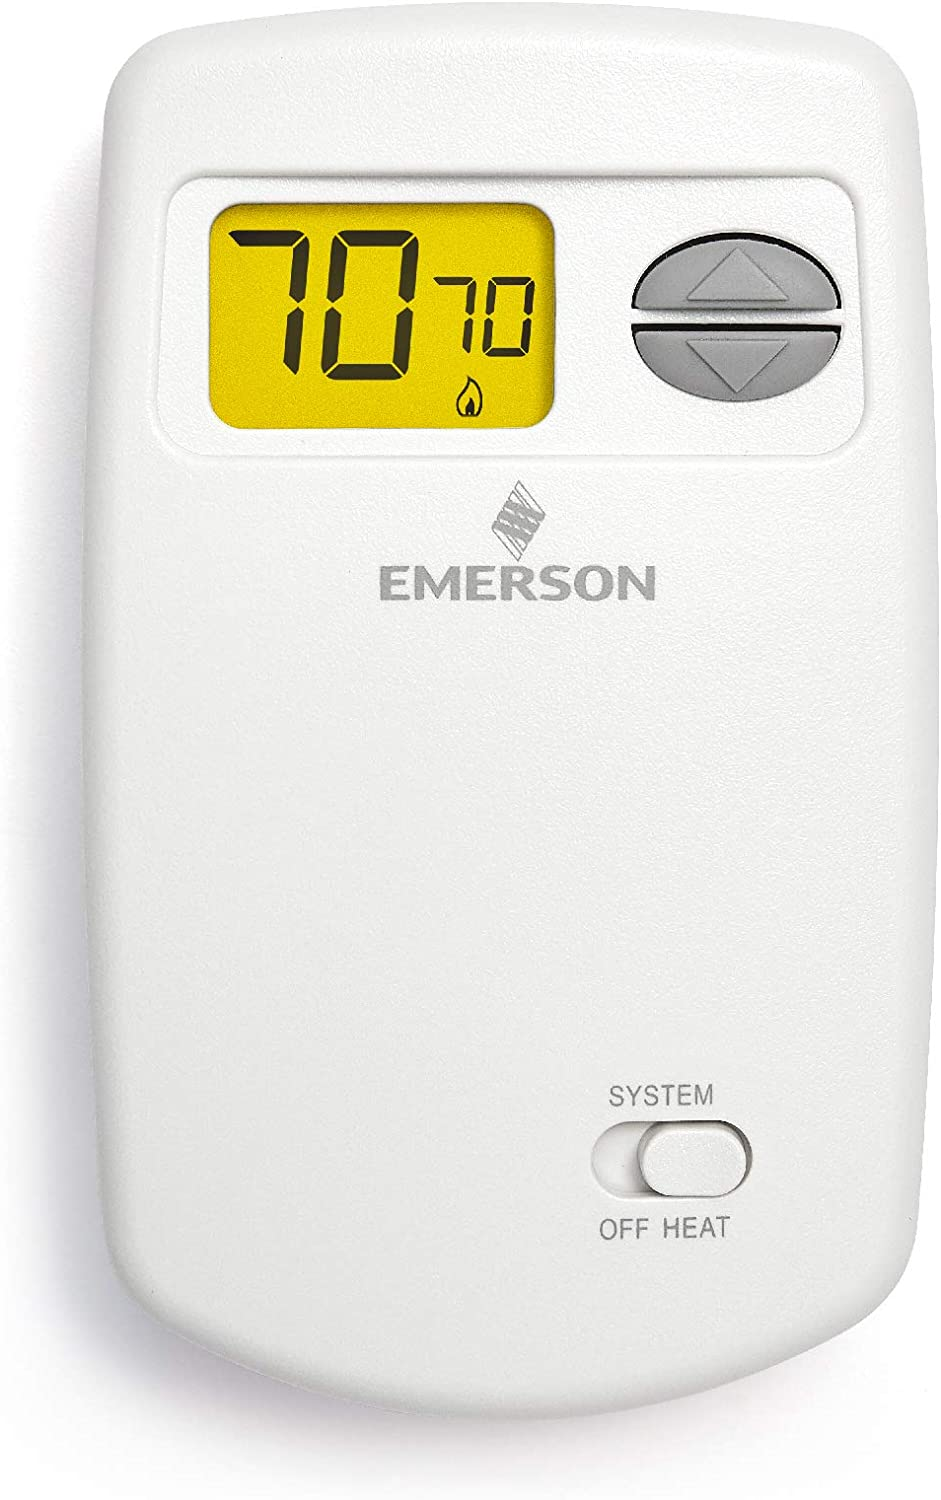 Emerson 1E78-140 Non-Programmable Heat Only Thermostat for Single-Stage Systems